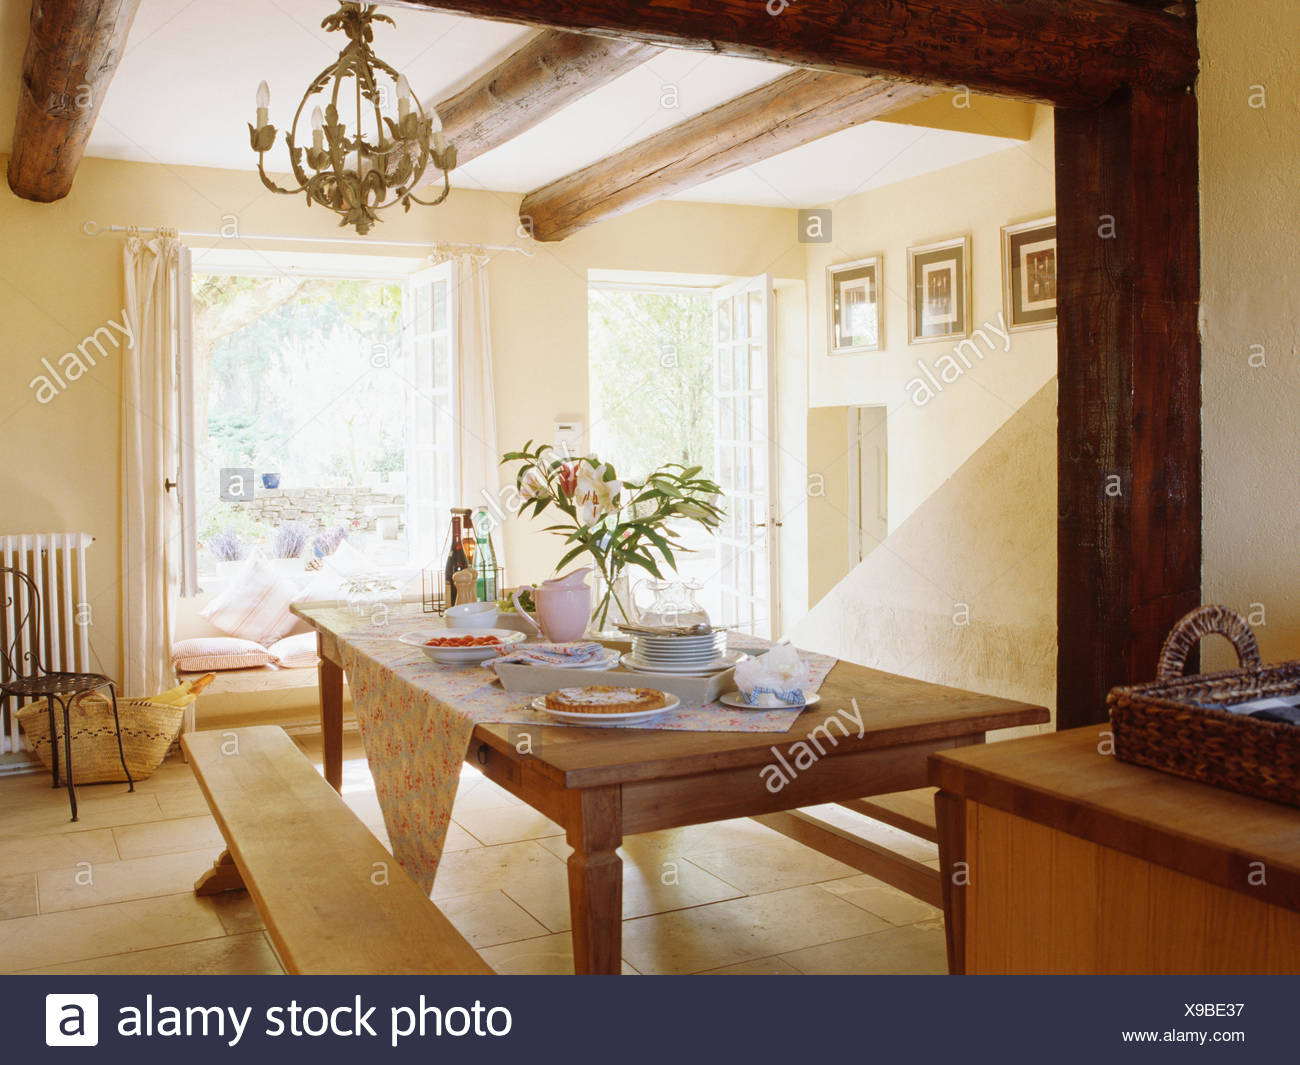 Simple Wooden Benches And Old Pine Table In Cream French Country Dining Room